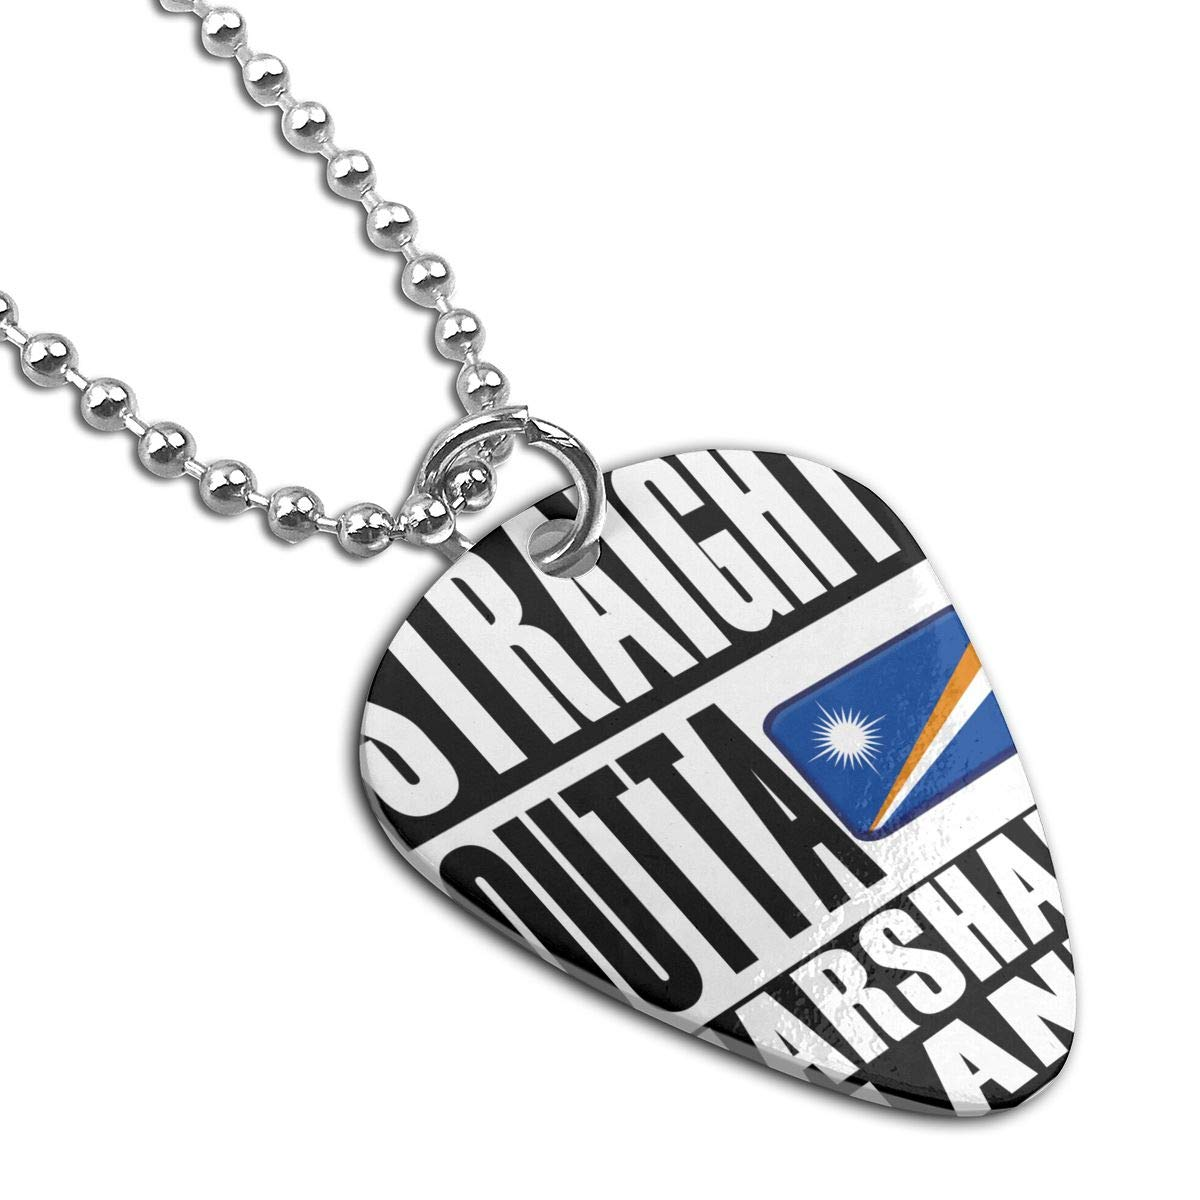 Straight Outta Marshall Islands Guitar Pick Necklace Unique Custom Fashion Pet Card Keychain